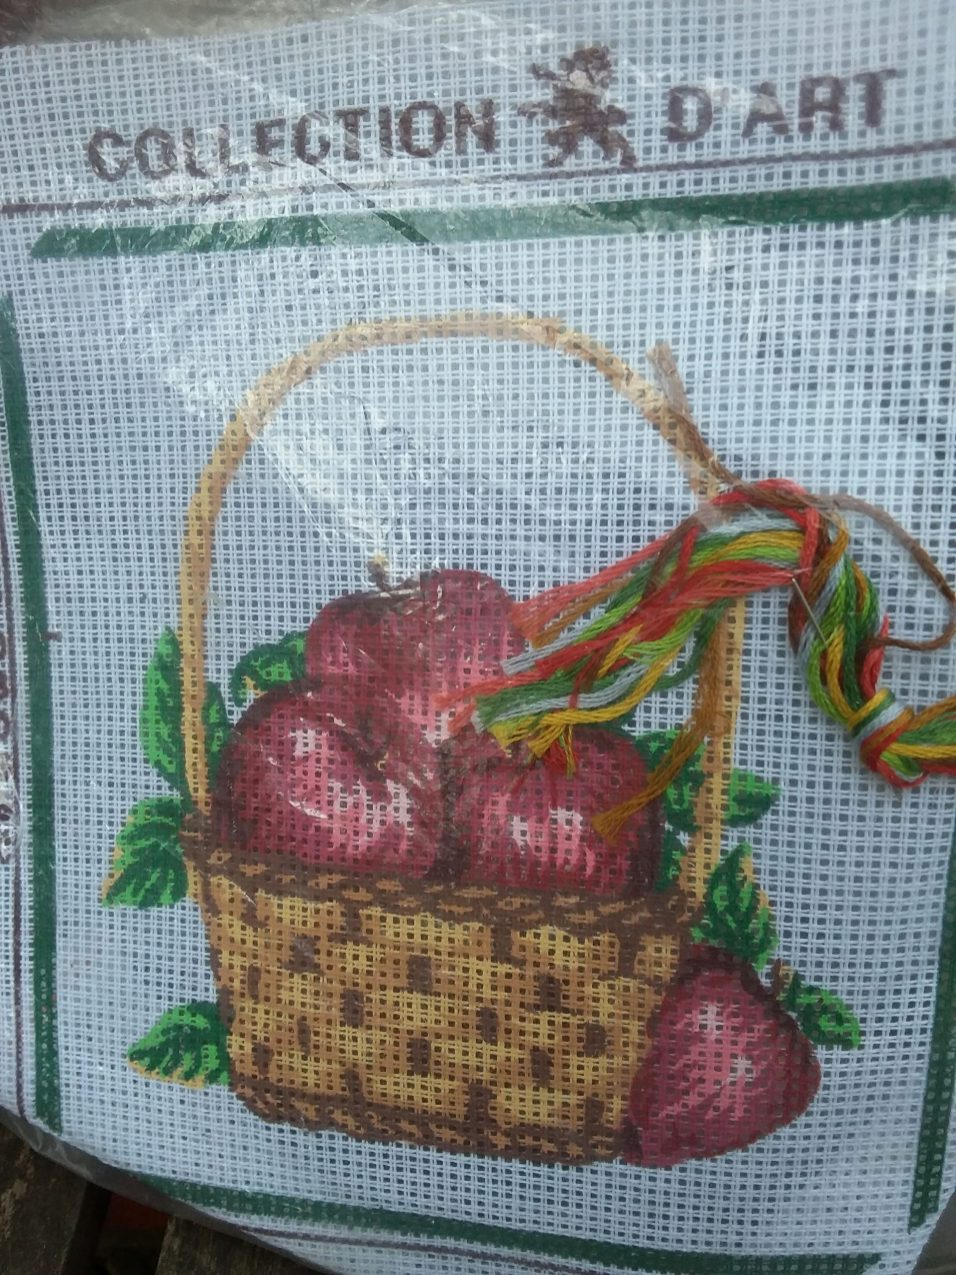 Basket of Apples - Printed canvas plus wools and threads. No instuctions. £1.00